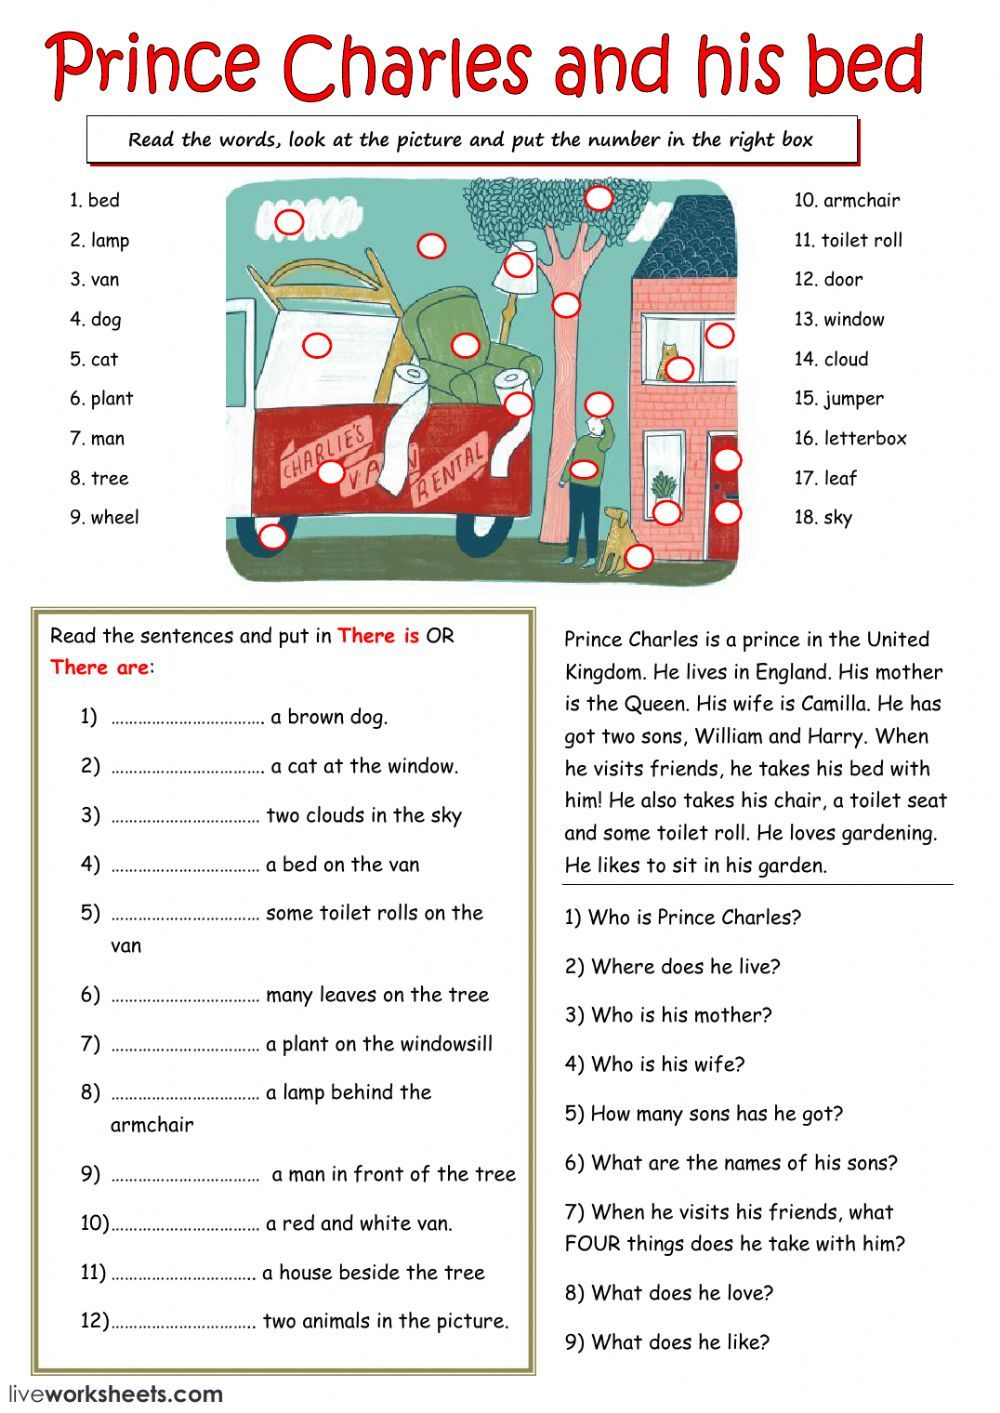 Reading Comprehension Interactive And Downloadable Worksheet You Can Do The Exercises Reading Comprehension Worksheets Reading Comprehension Inferring Lessons English worksheet reading pdf